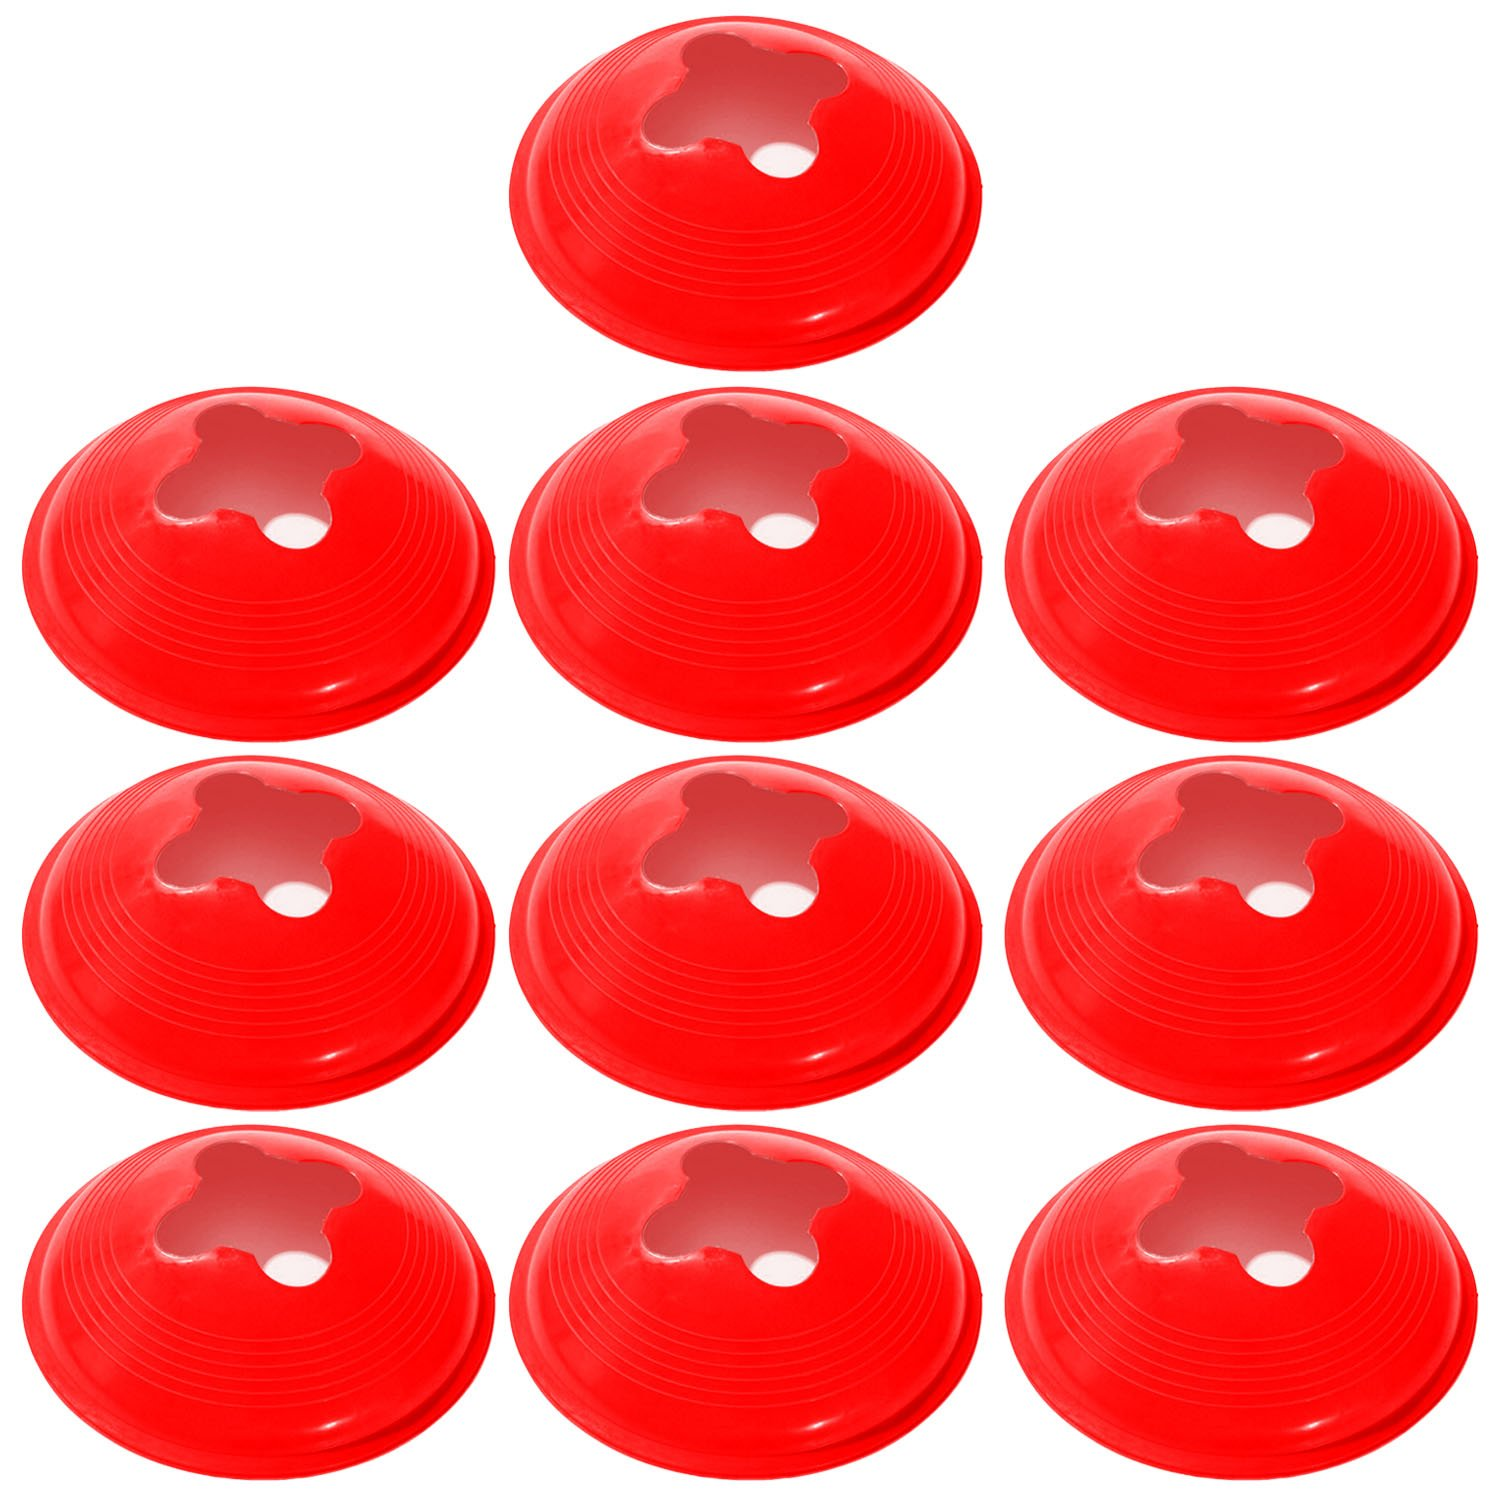 10 PCS Red Sports Space Field Markers Cones Agility Safety Disc Cones for Soccer Football Basketball Footwork Training Elisona